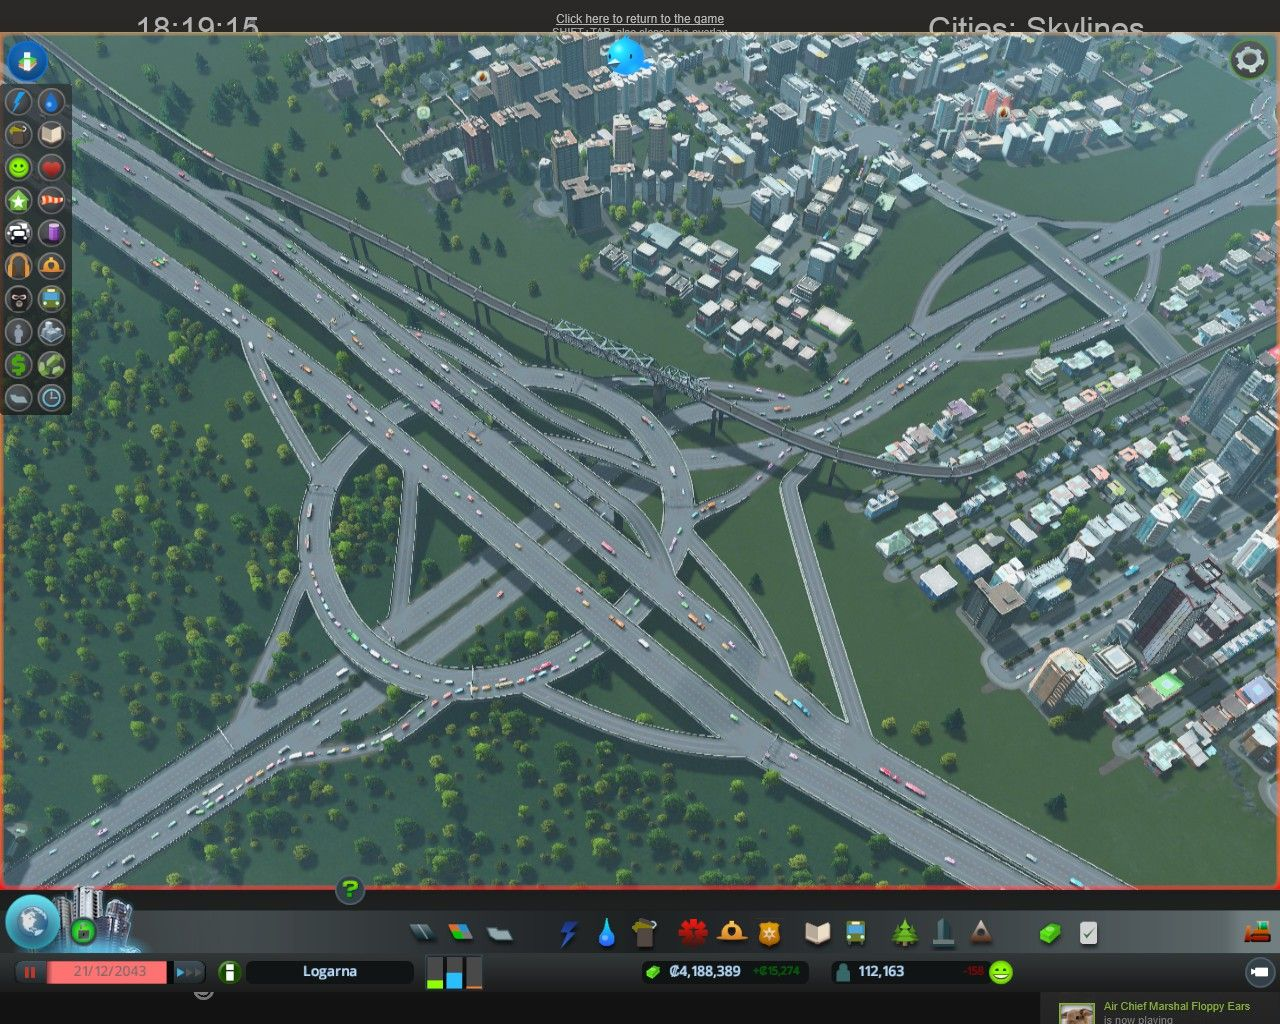 Image result for cities skylines map | Gaming | City